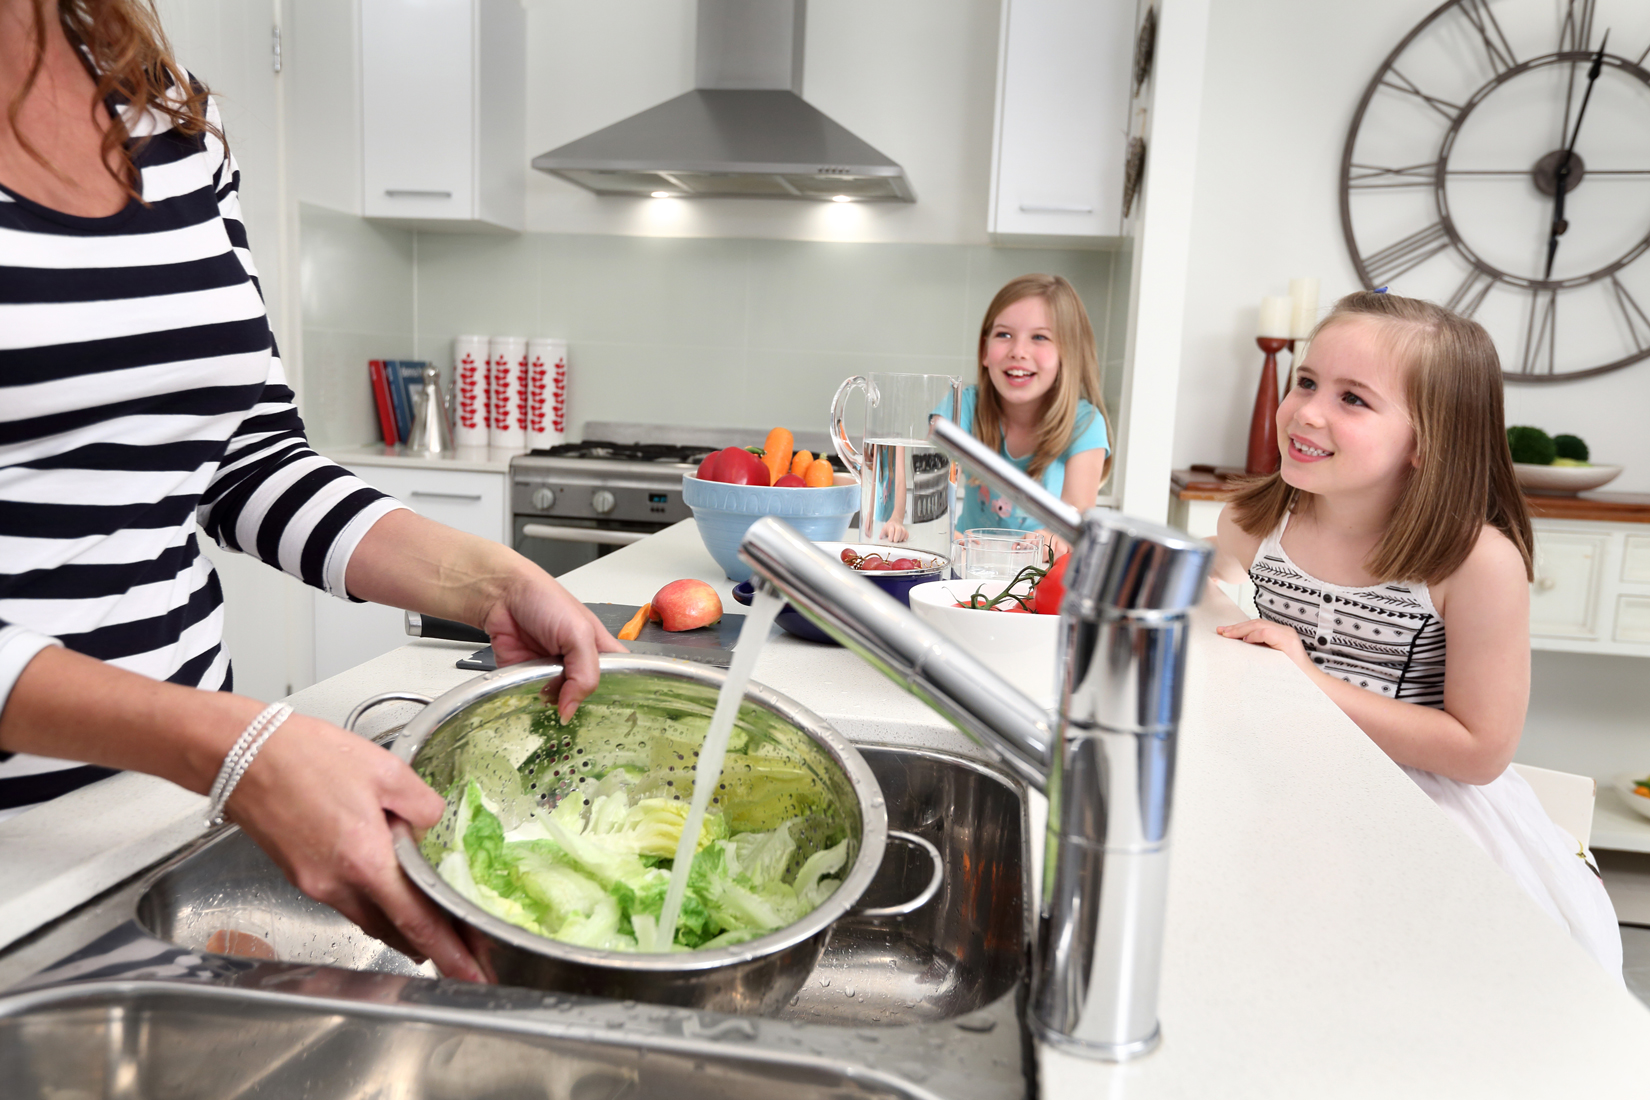 Mother washing lettuce at kitchen sink